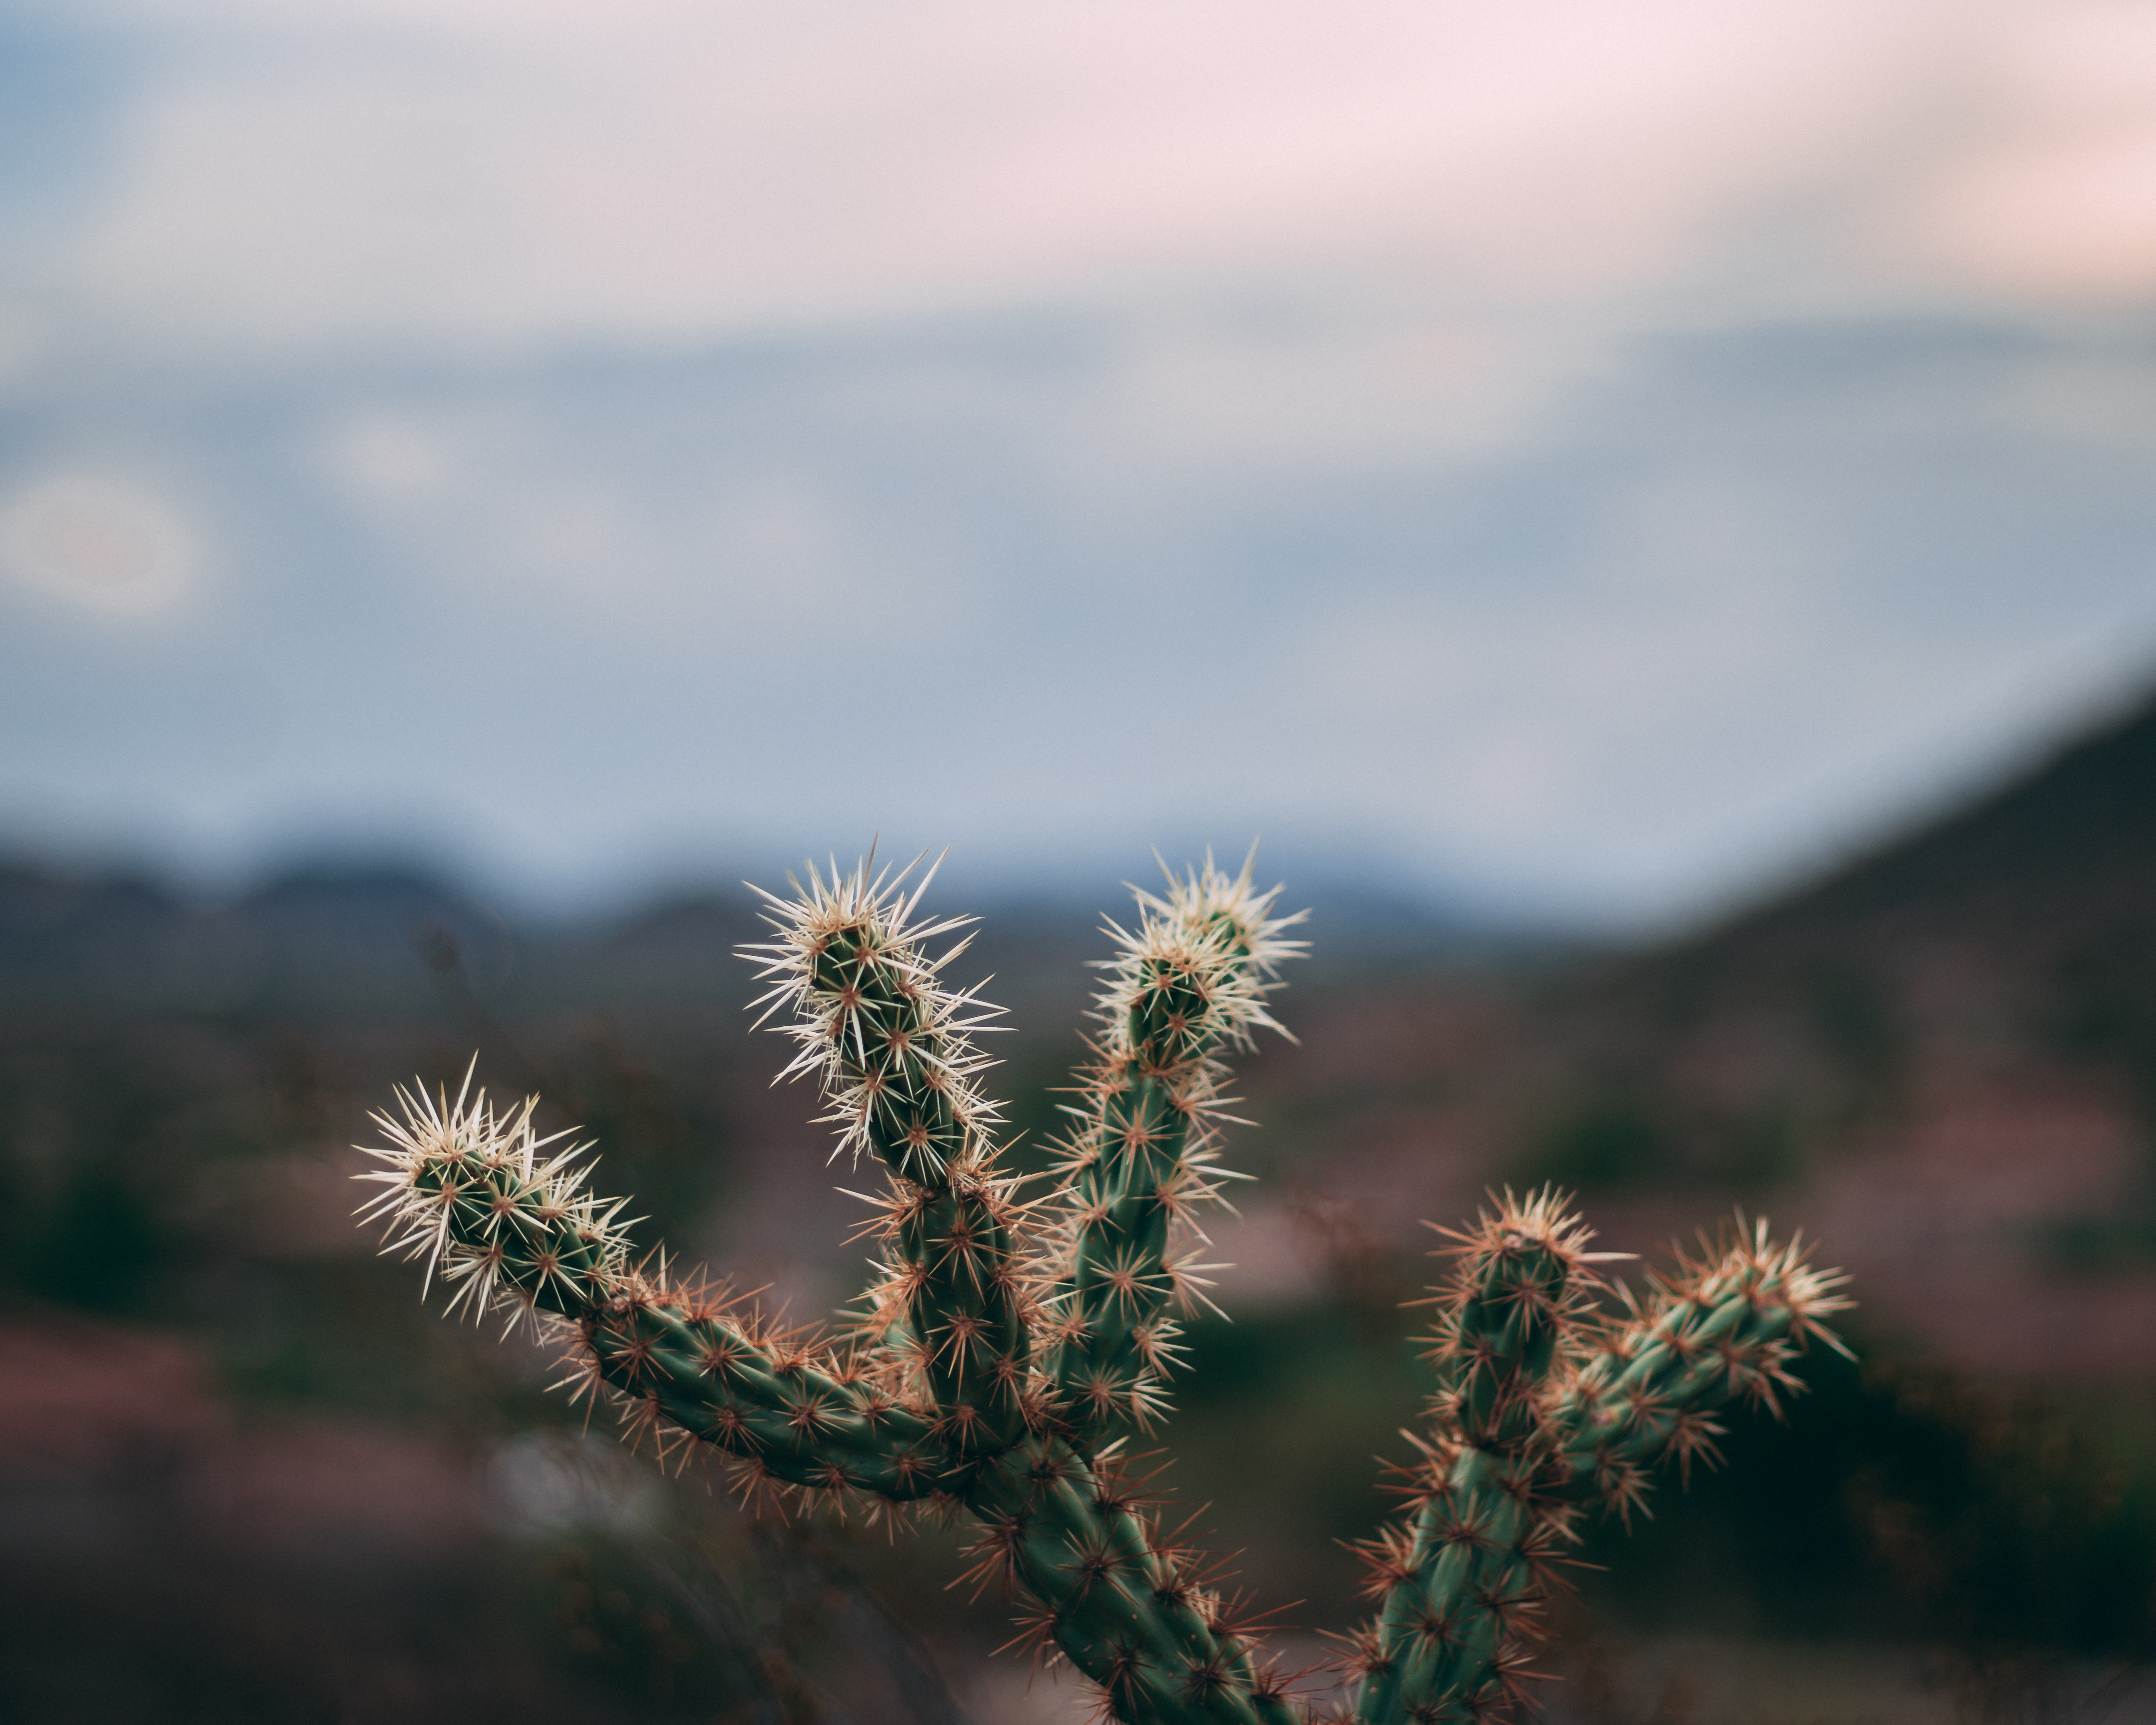 shallow focus photography of green cactus